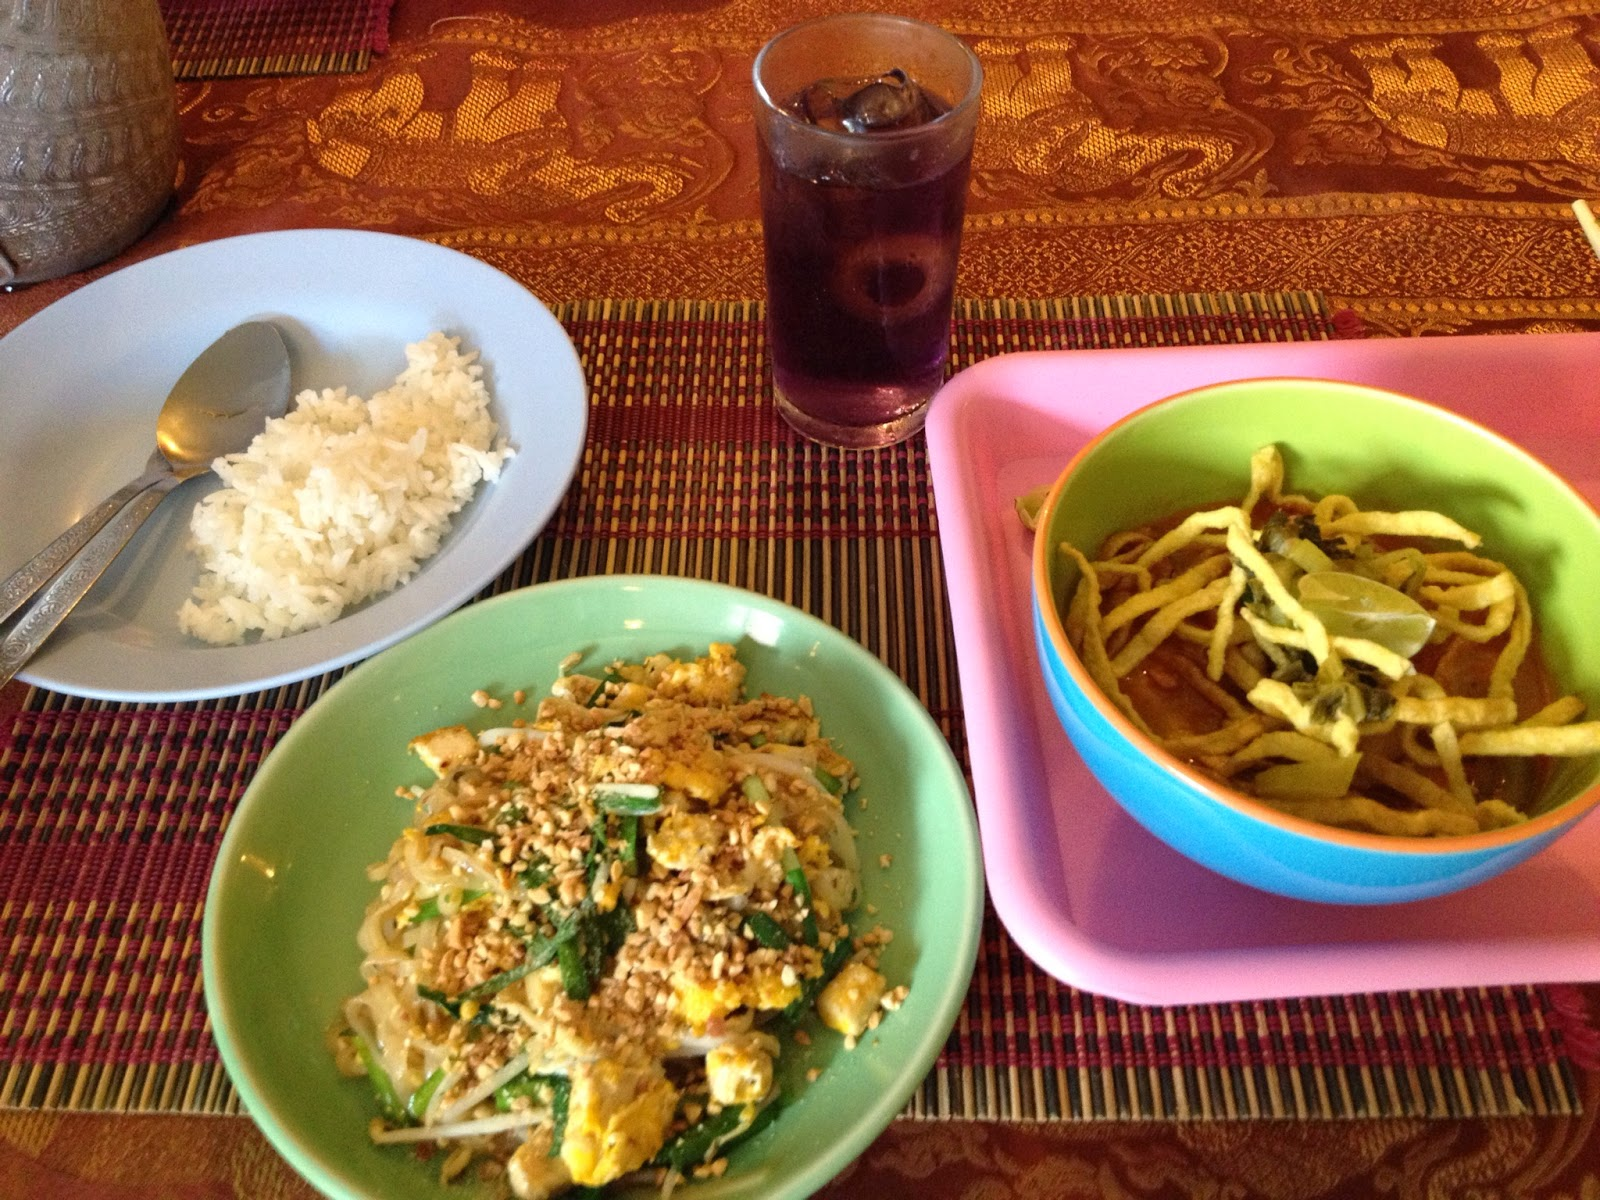 Chiang Mai - I made Pad Thai and Khao Soi. It was delicious!!